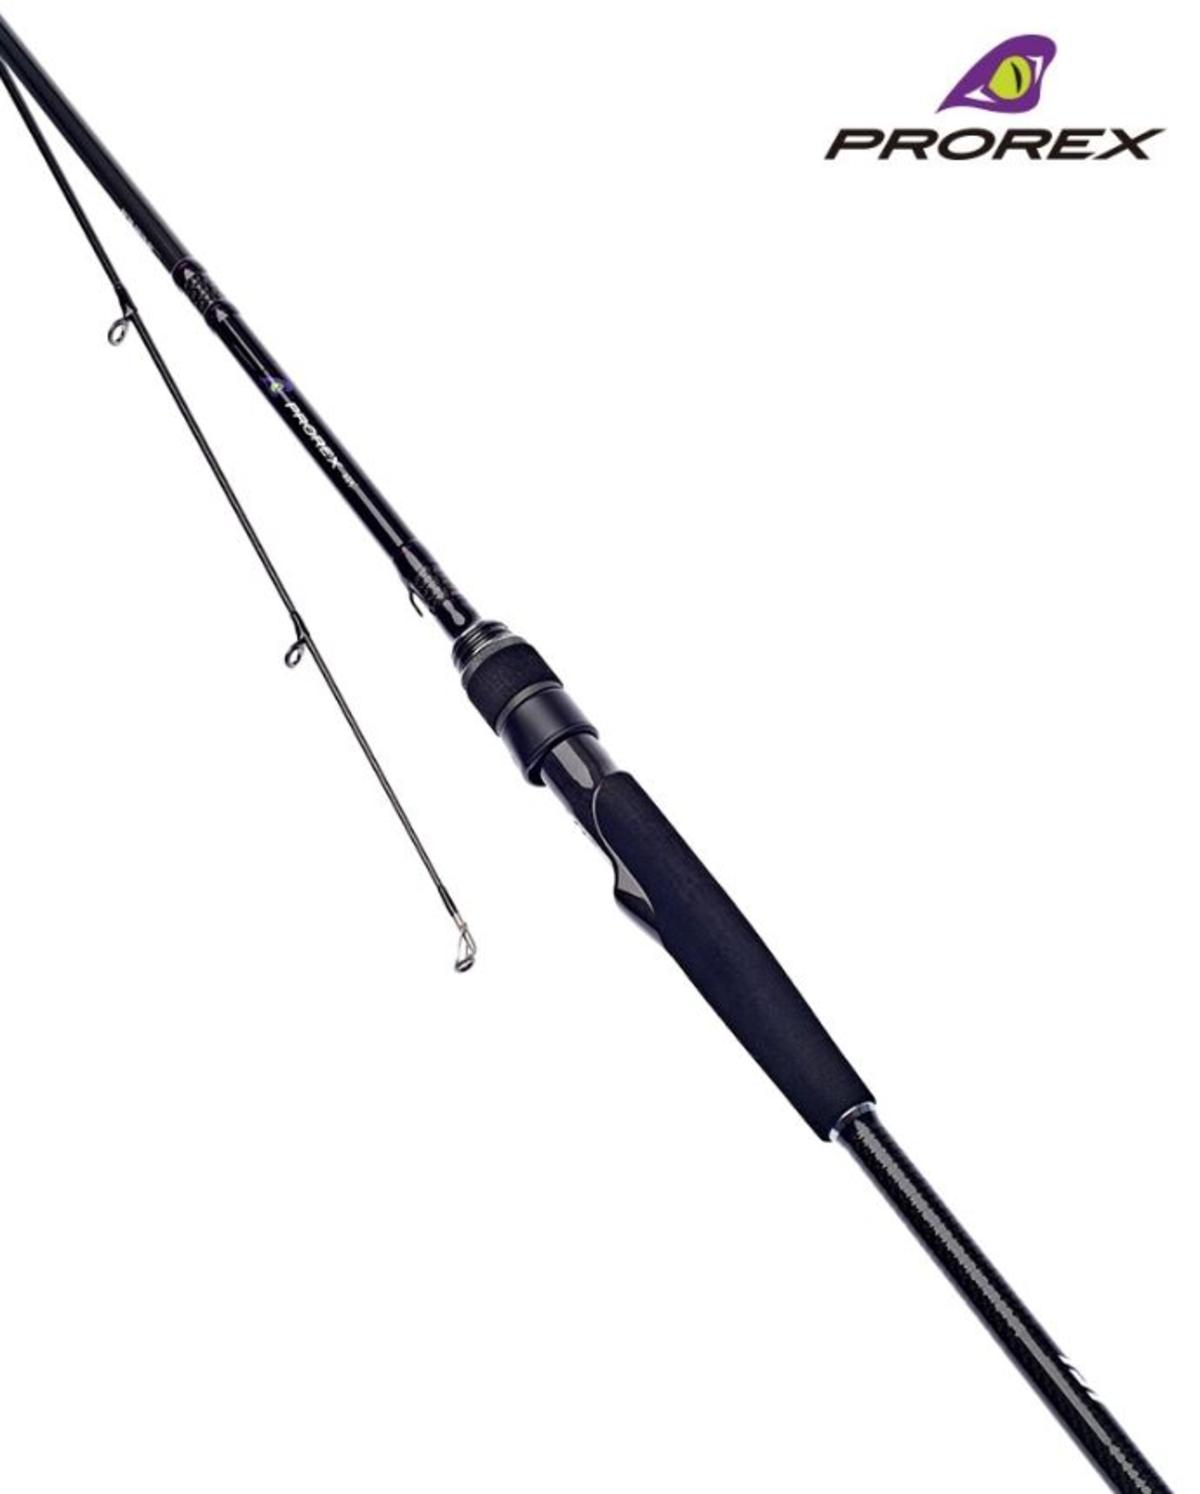 New Daiwa Prorex AGS Spinning Rod 7'1' 7-32g 2pc PXAGS712MMLFS-BS